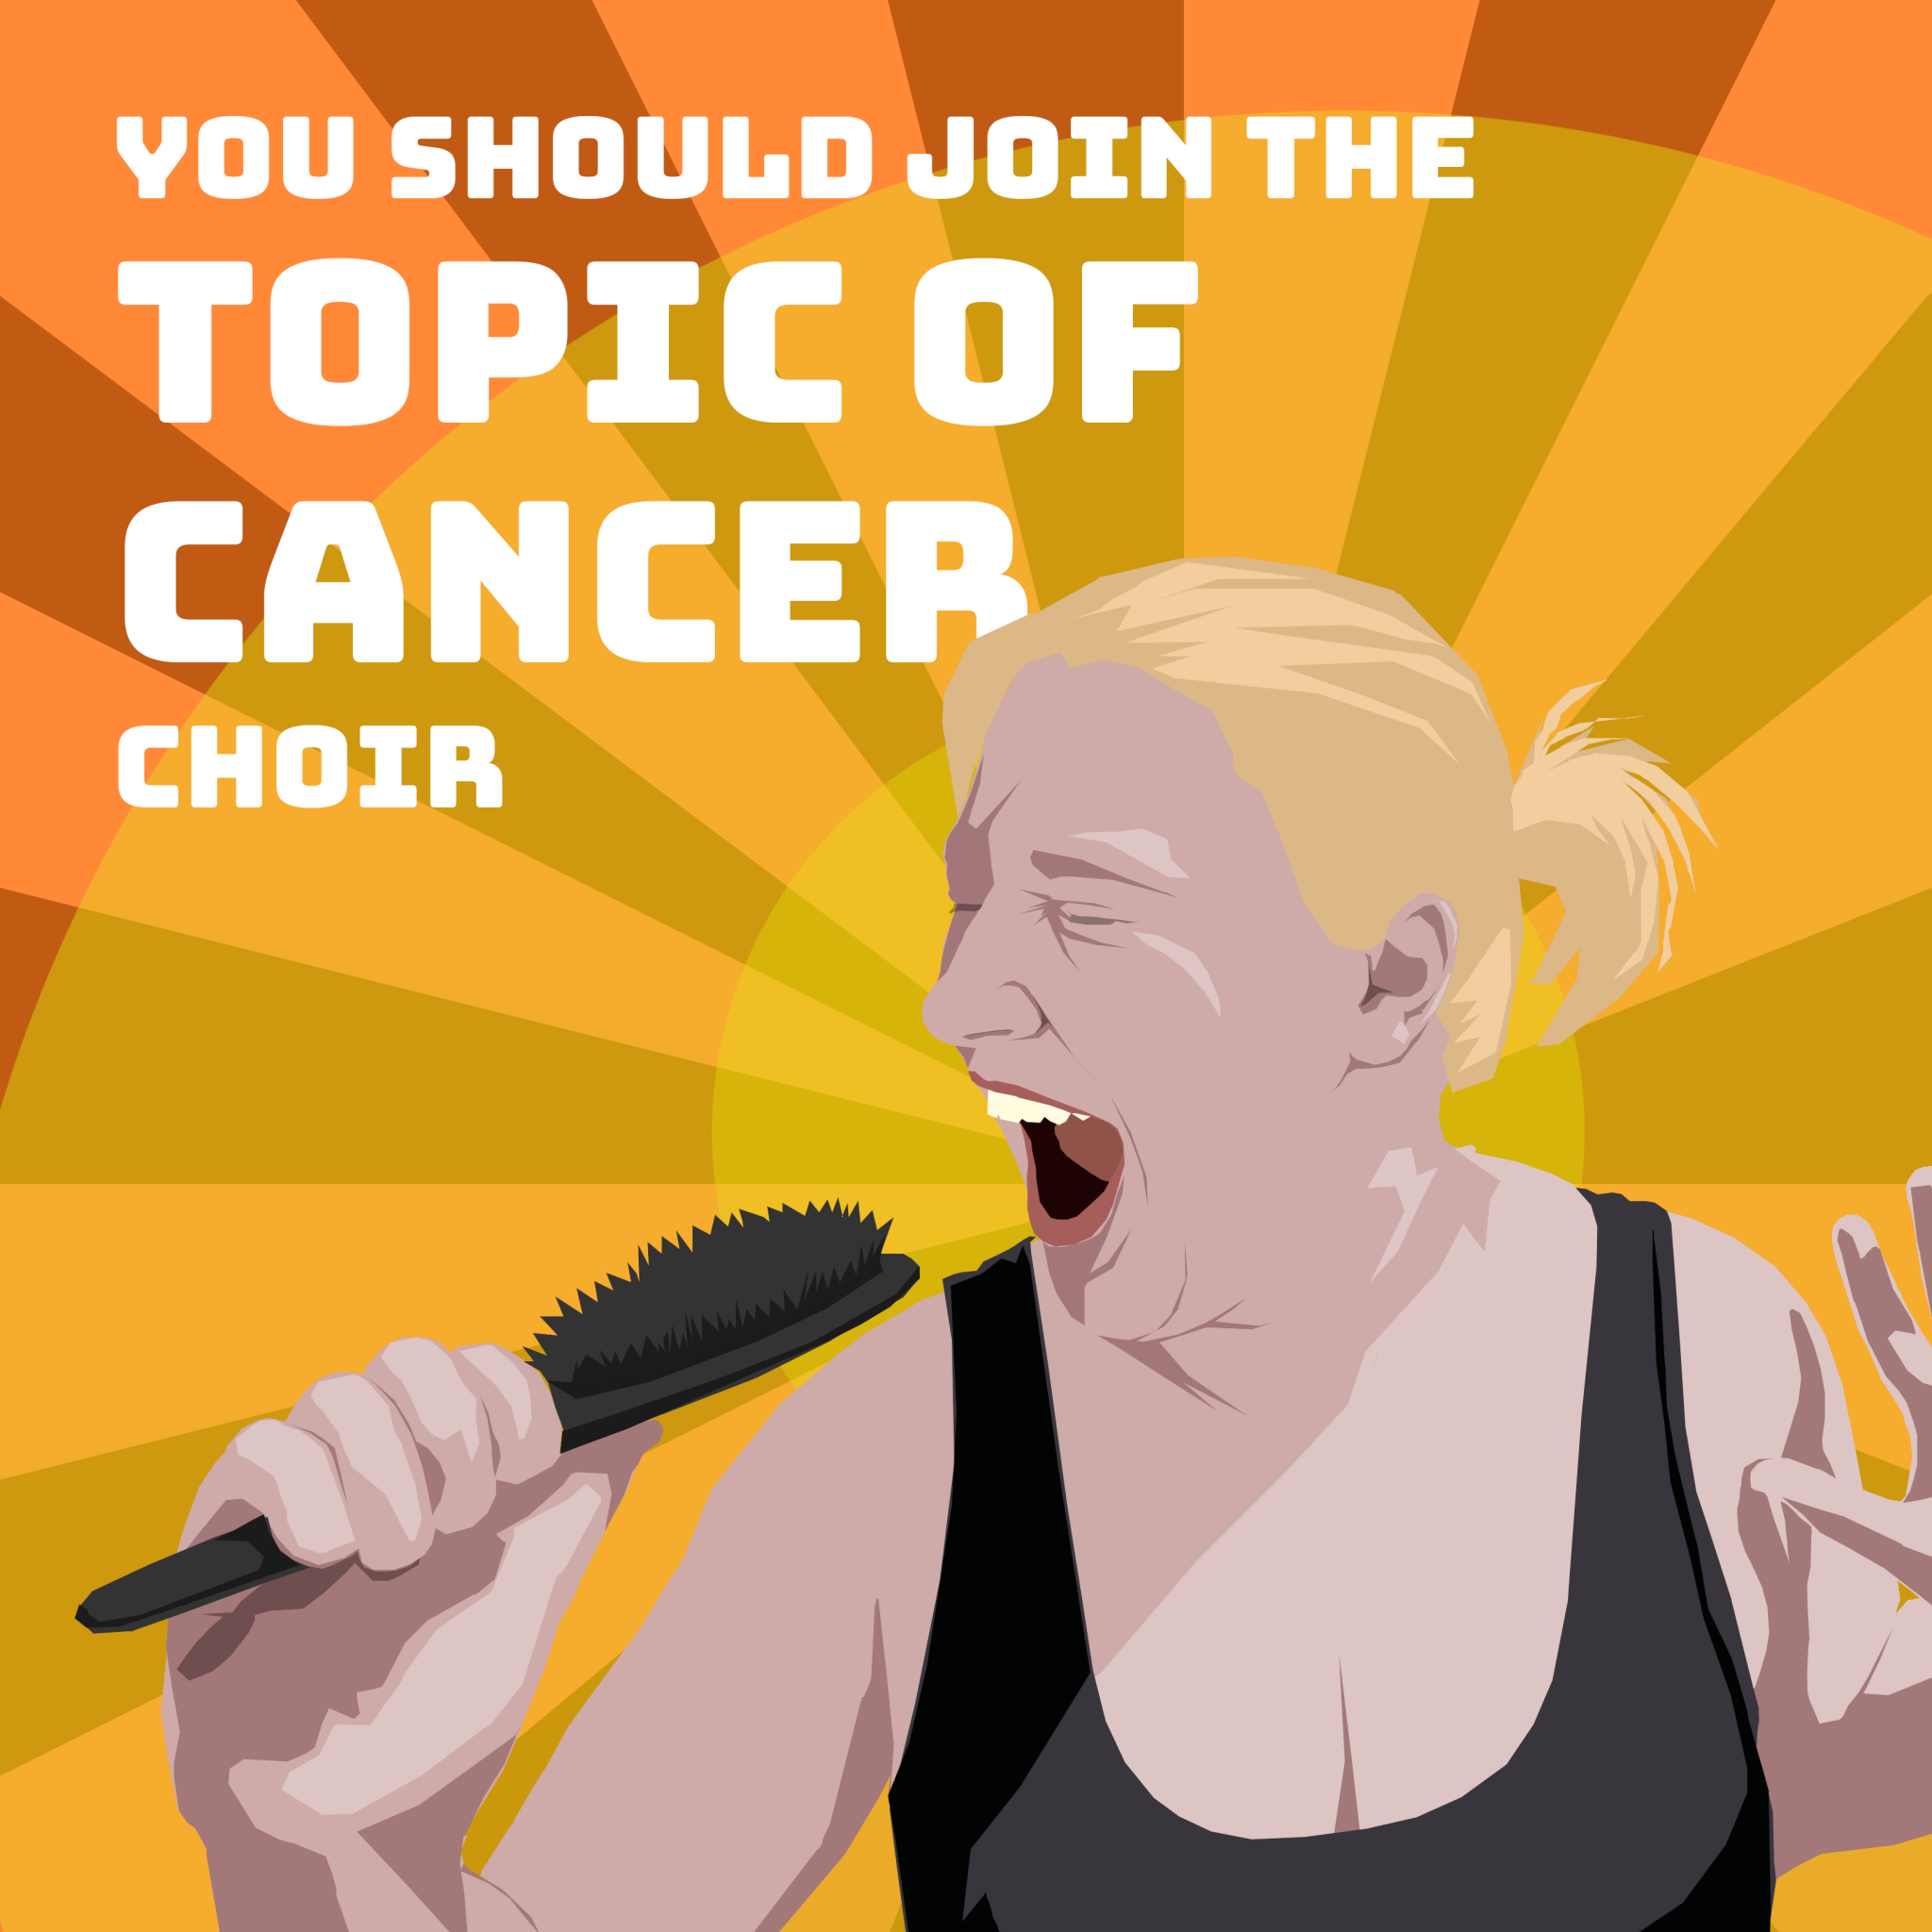 Topic Of Cancer Choir